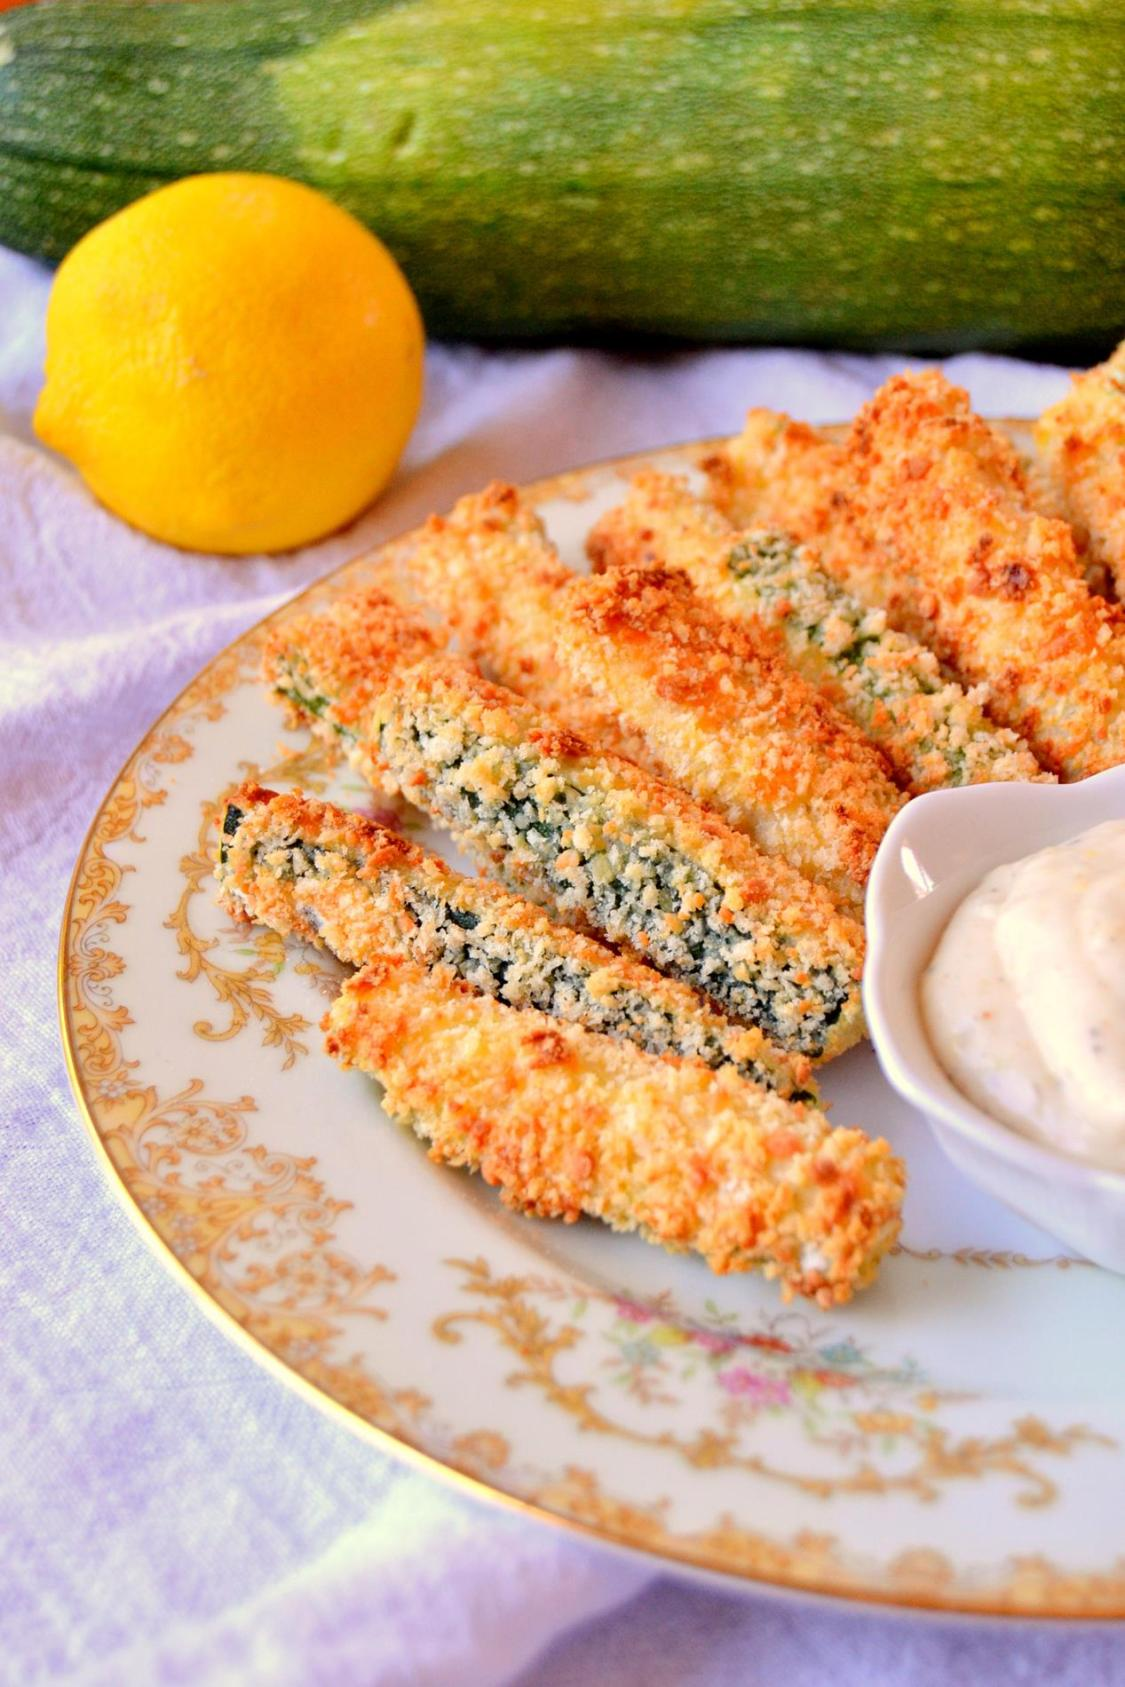 Baked Parmesan Zucchini Sticks with Lemon Garlic Aioli on www.TattooedMartha.com (7)